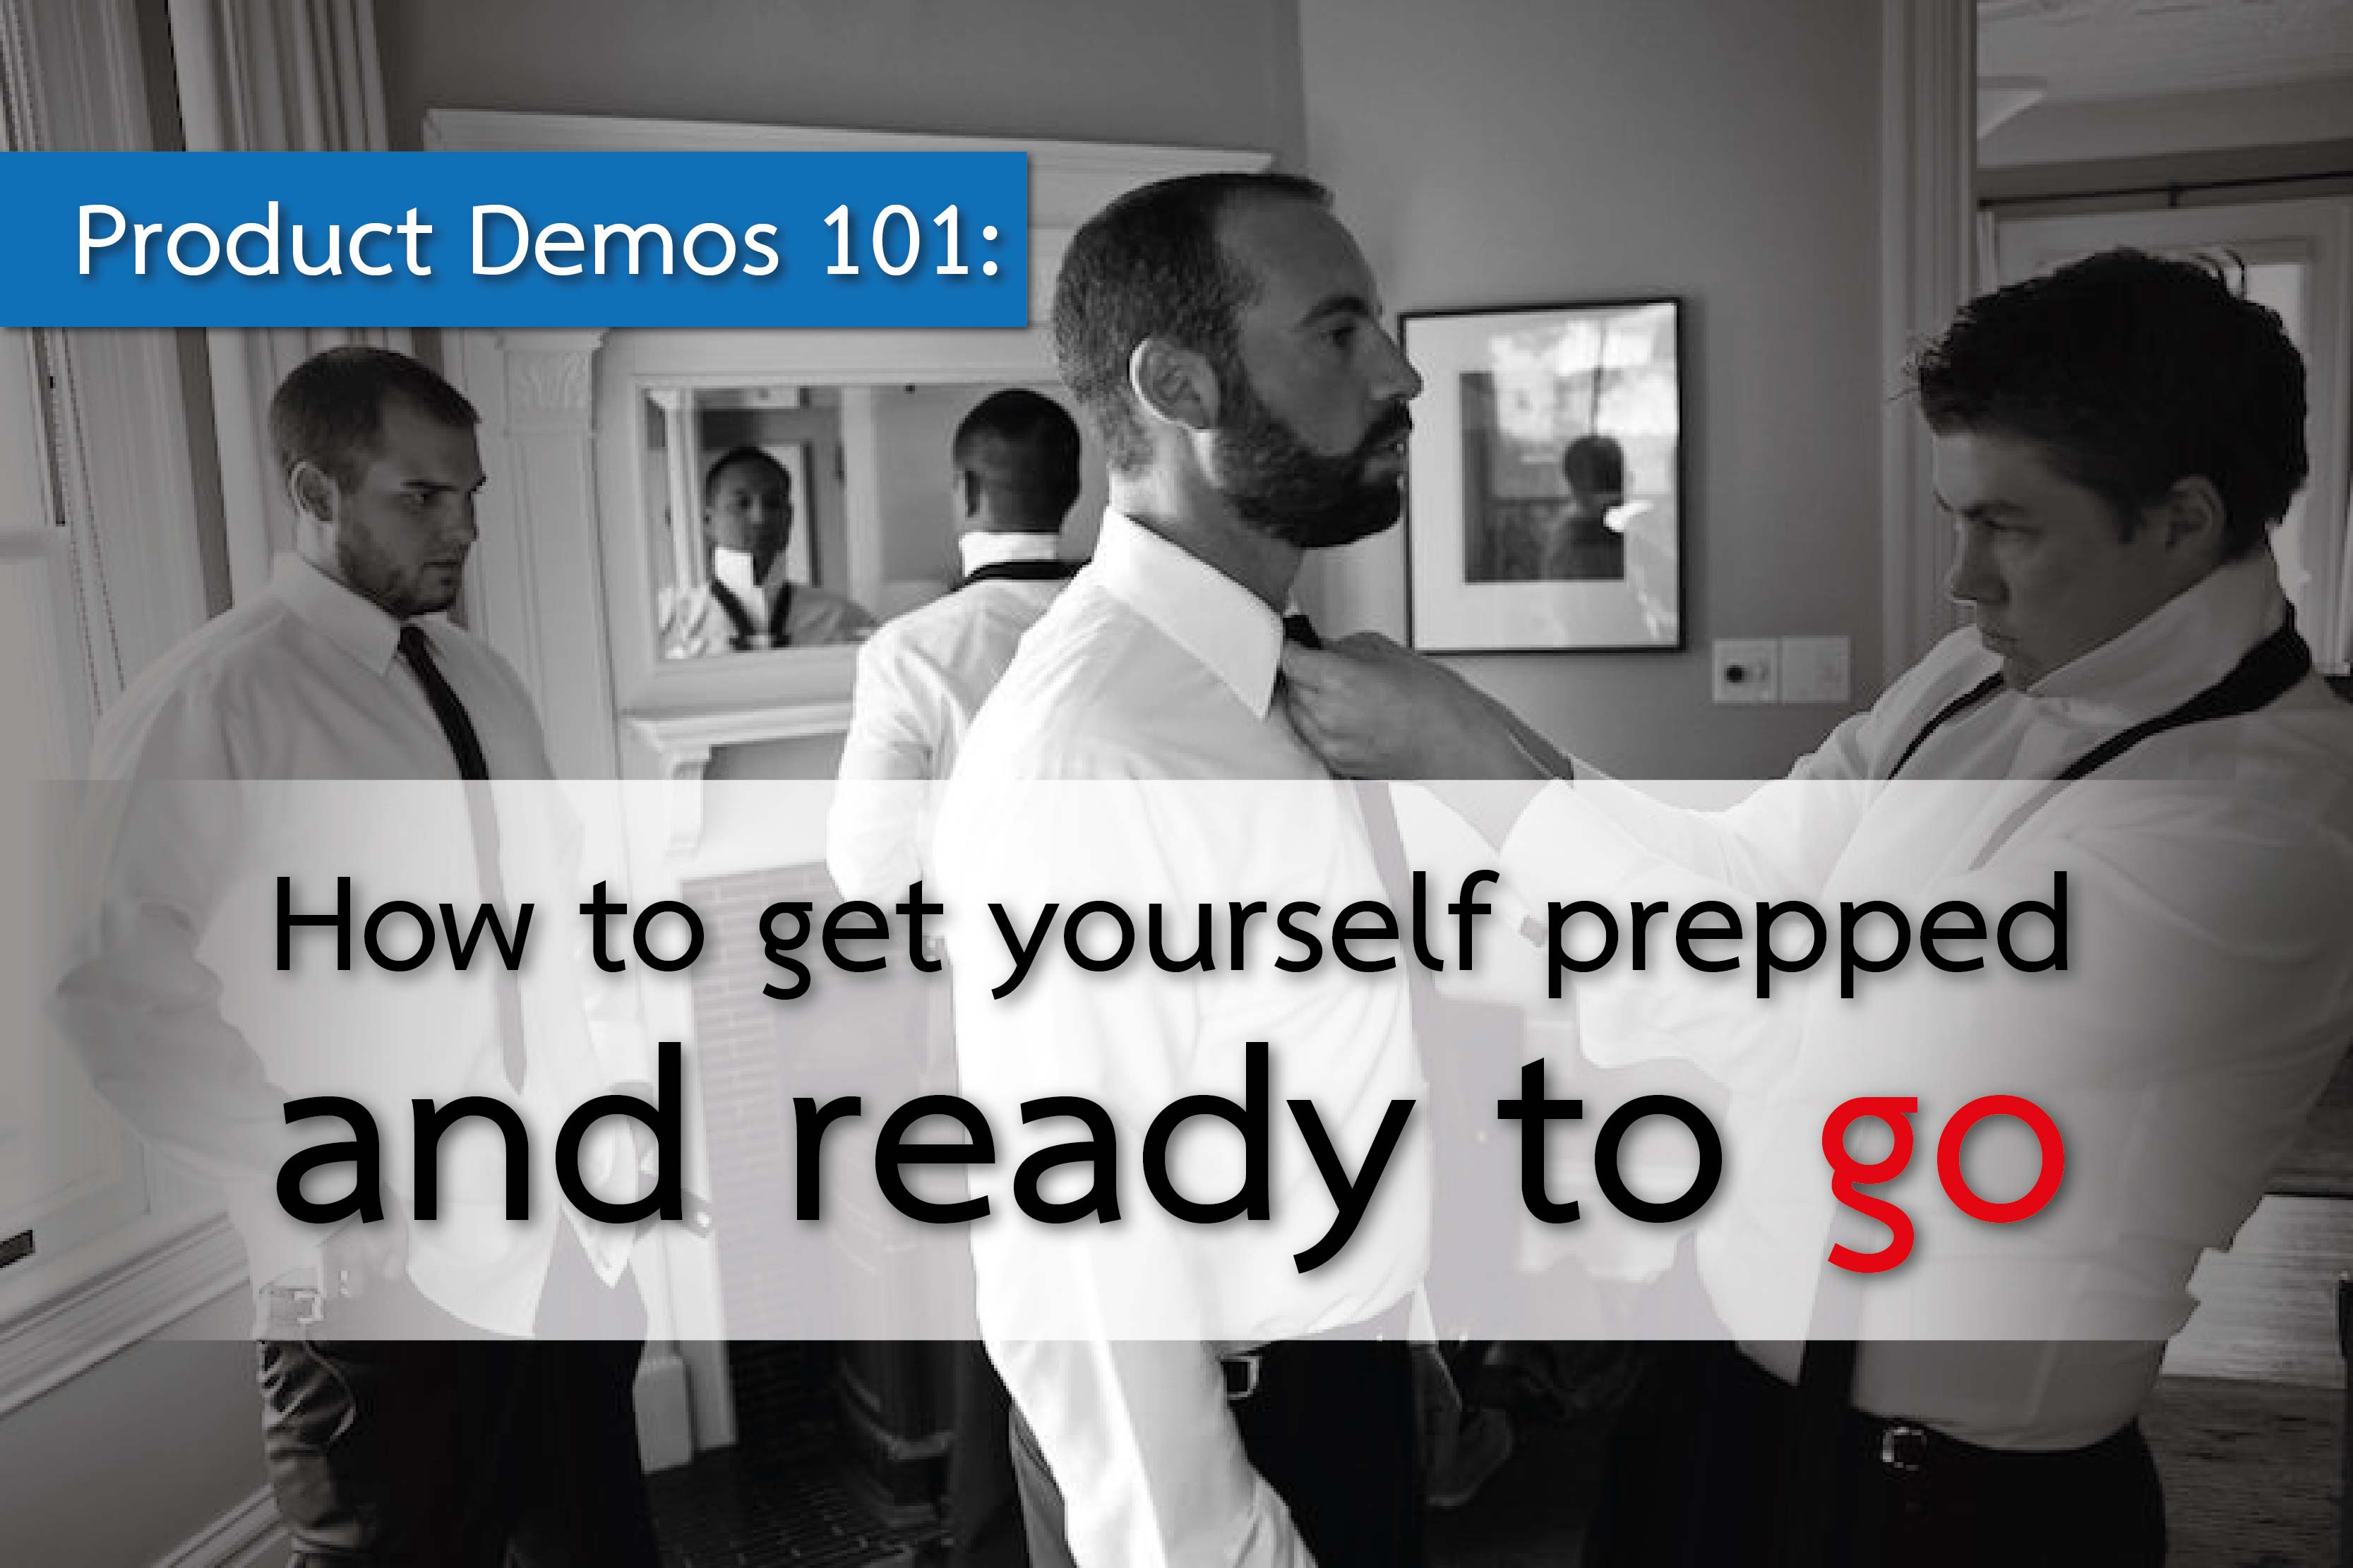 How to prepare for giving product demos